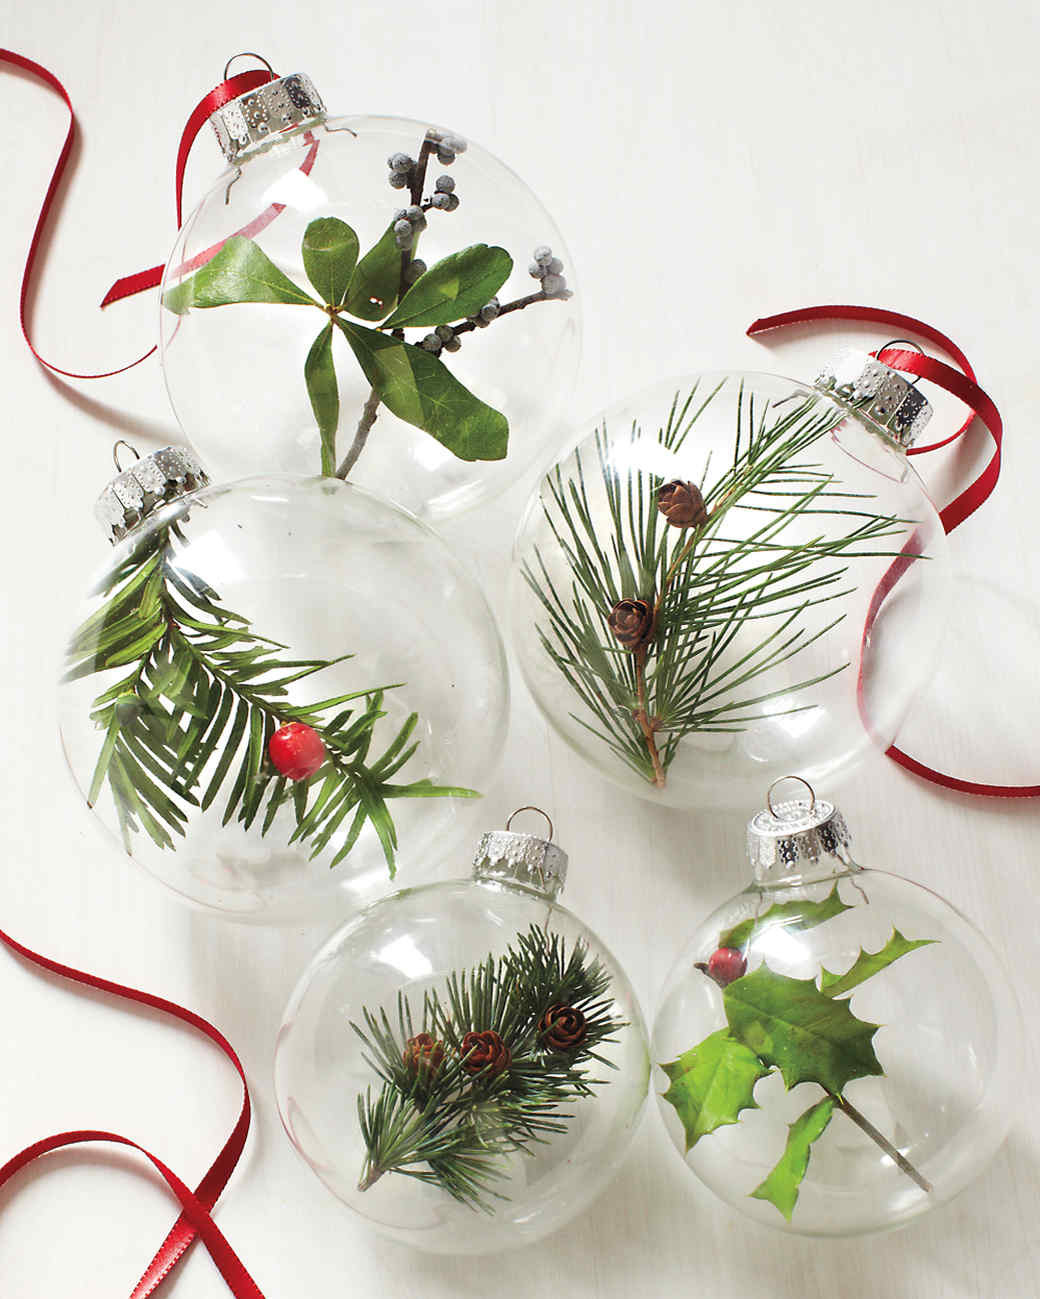 Best ideas about DIY Christmas Ornament . Save or Pin 20 of Our Most Memorable DIY Christmas Ornament Projects Now.